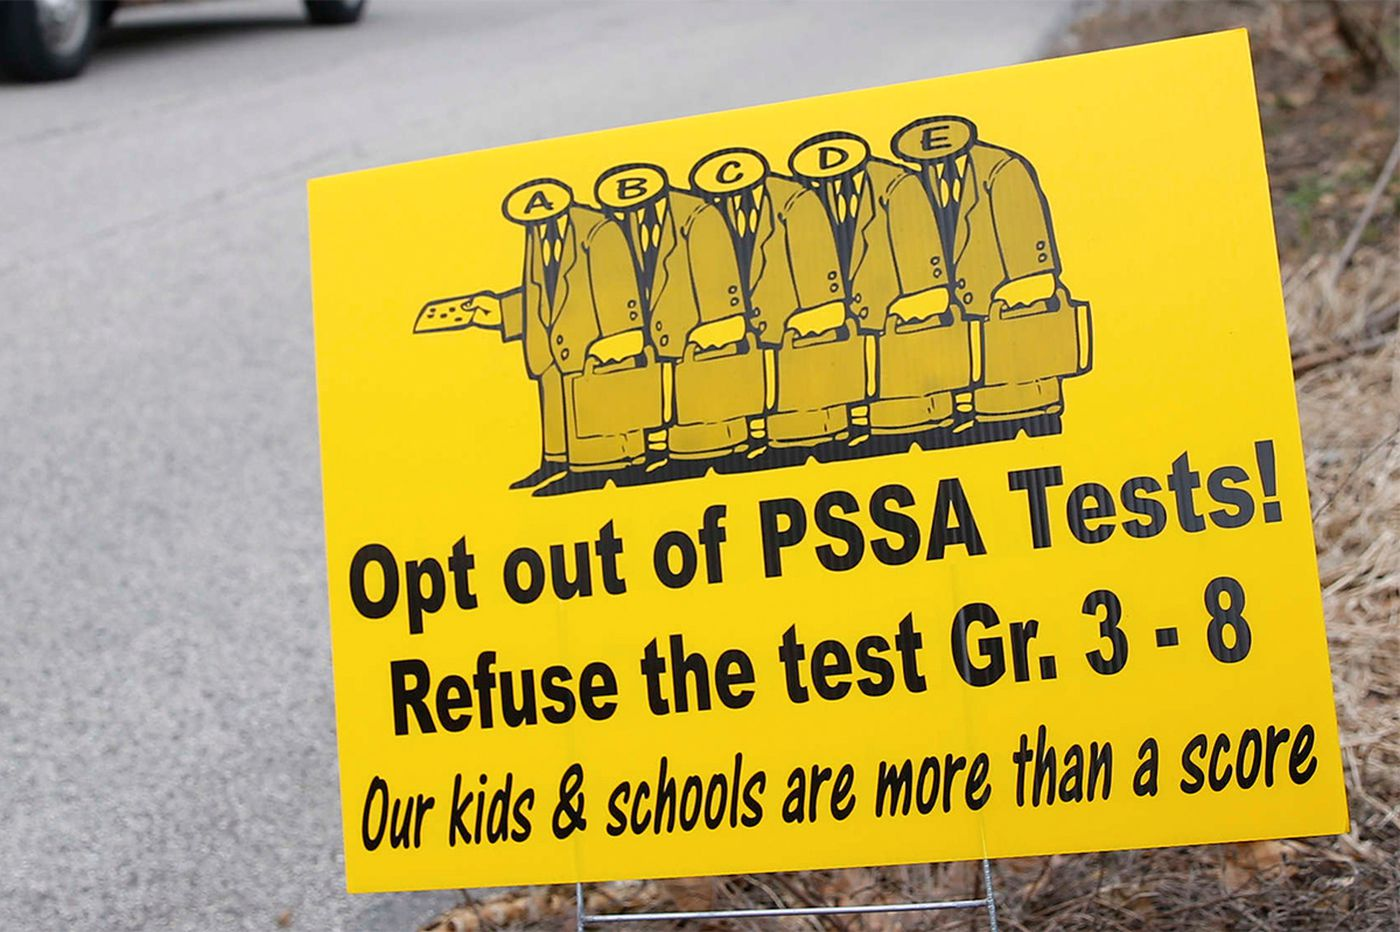 As protests rise over high-stakes tests, more students likely to opt out